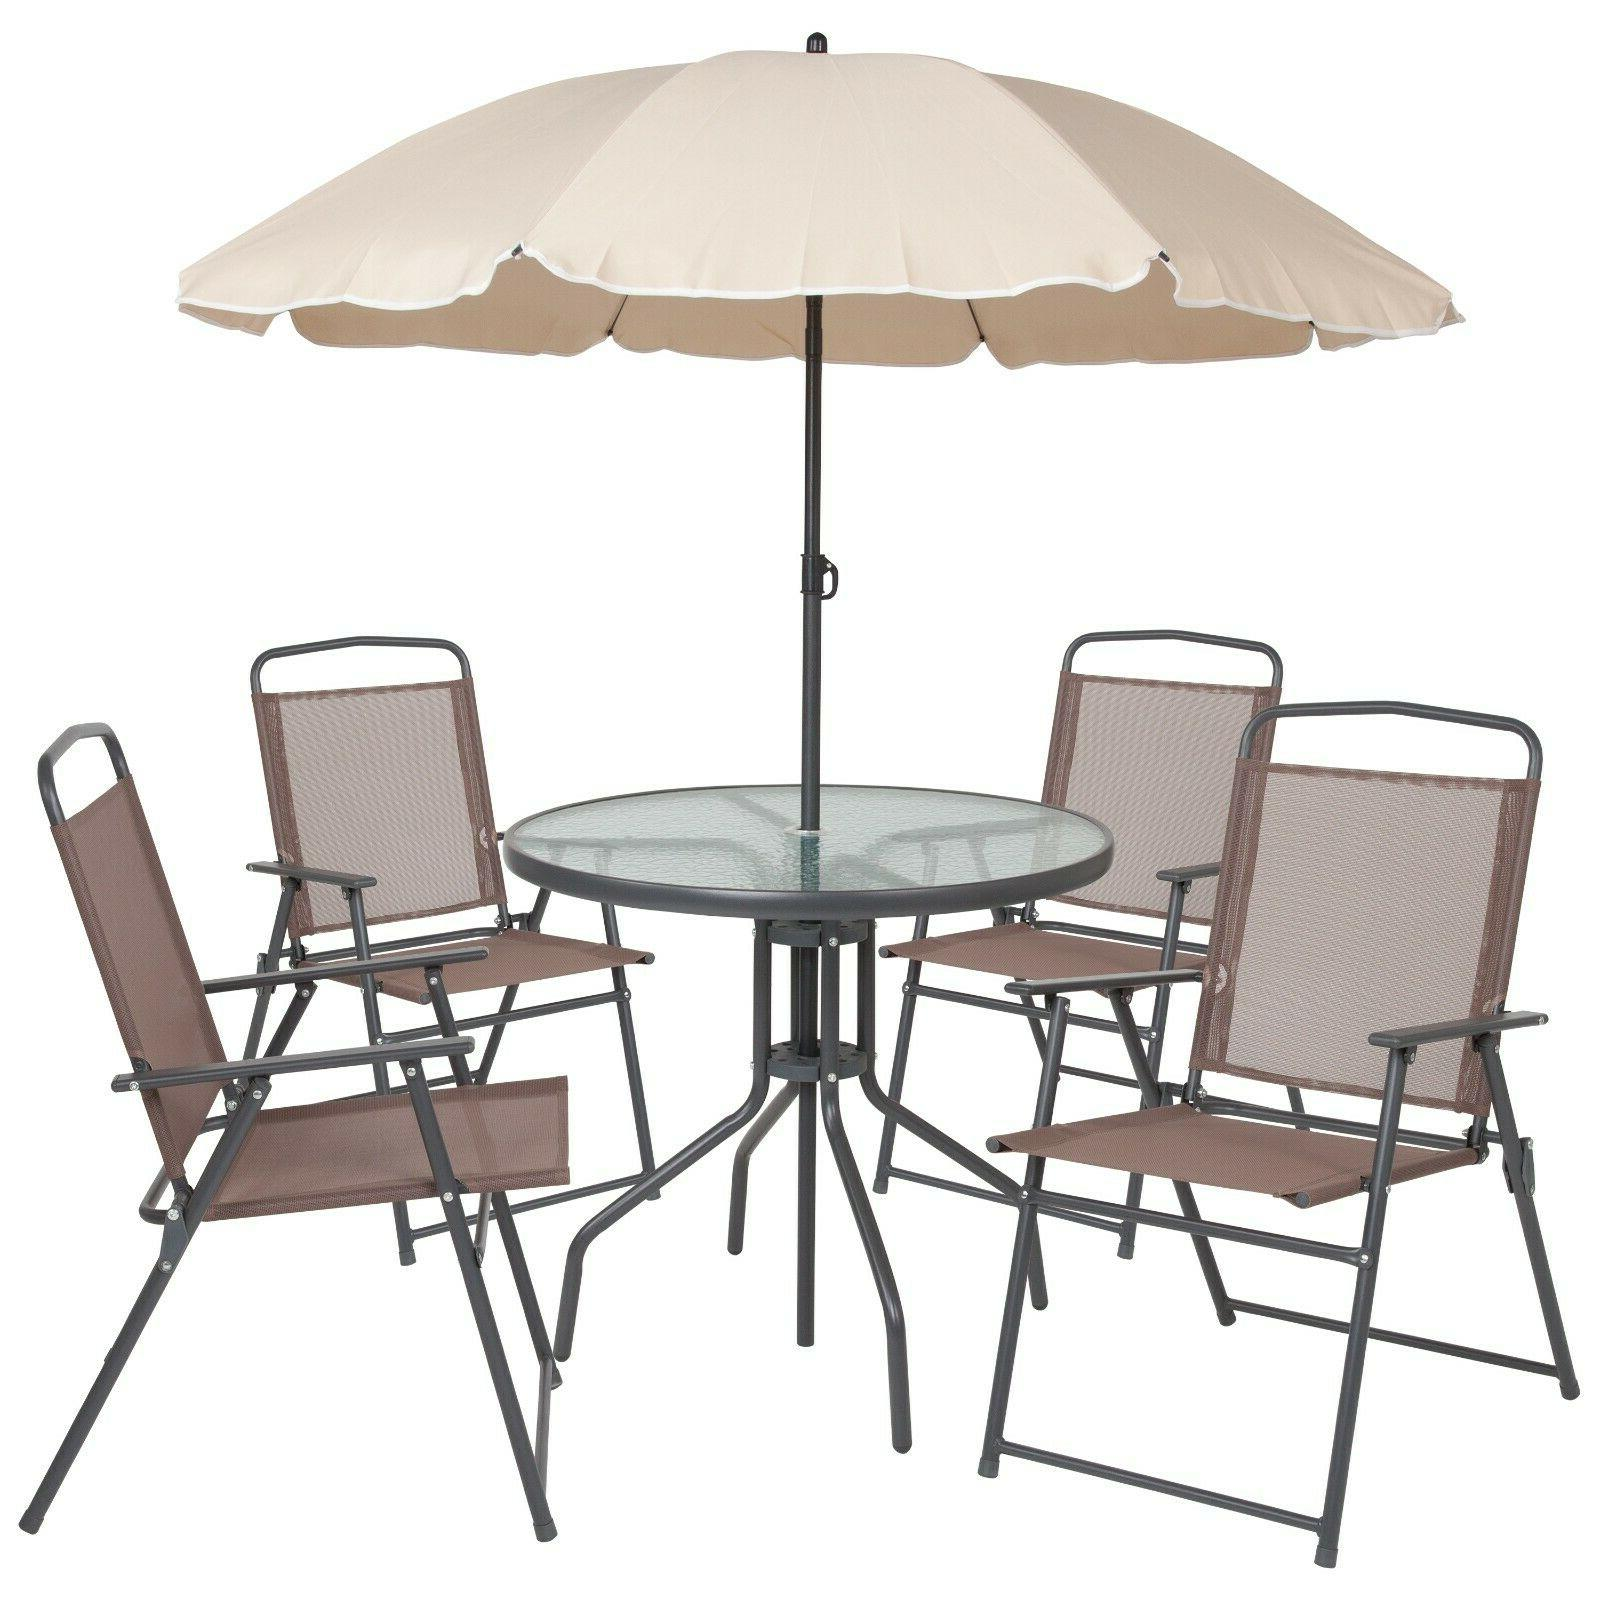 Patio Furniture Sets Clearance With Umbrella Commercial BHG